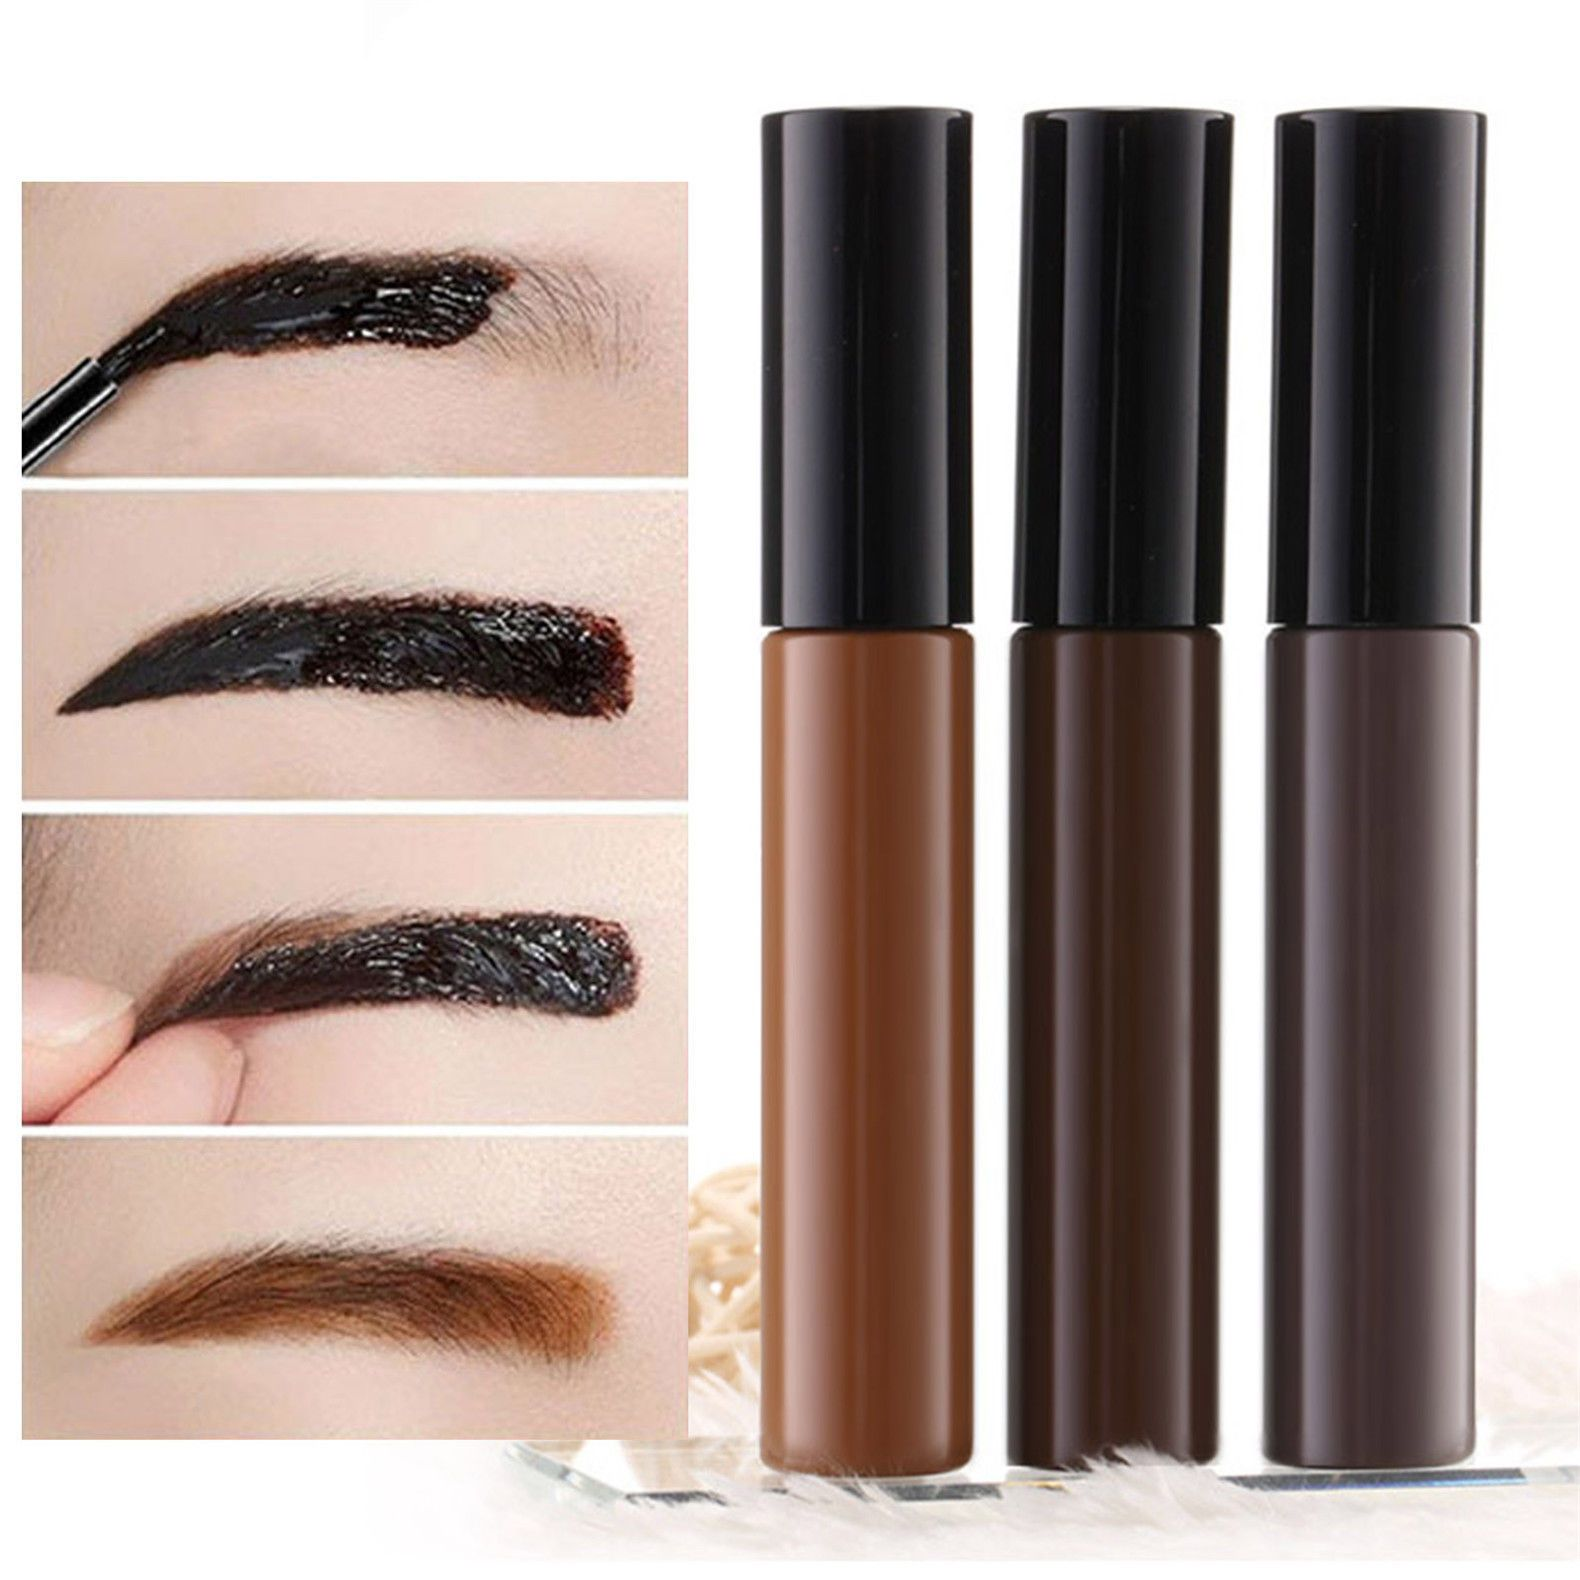 Peel Off Makeup Eyebrow Tattoo Crayon Waterproof Eye Brow Henna Tint